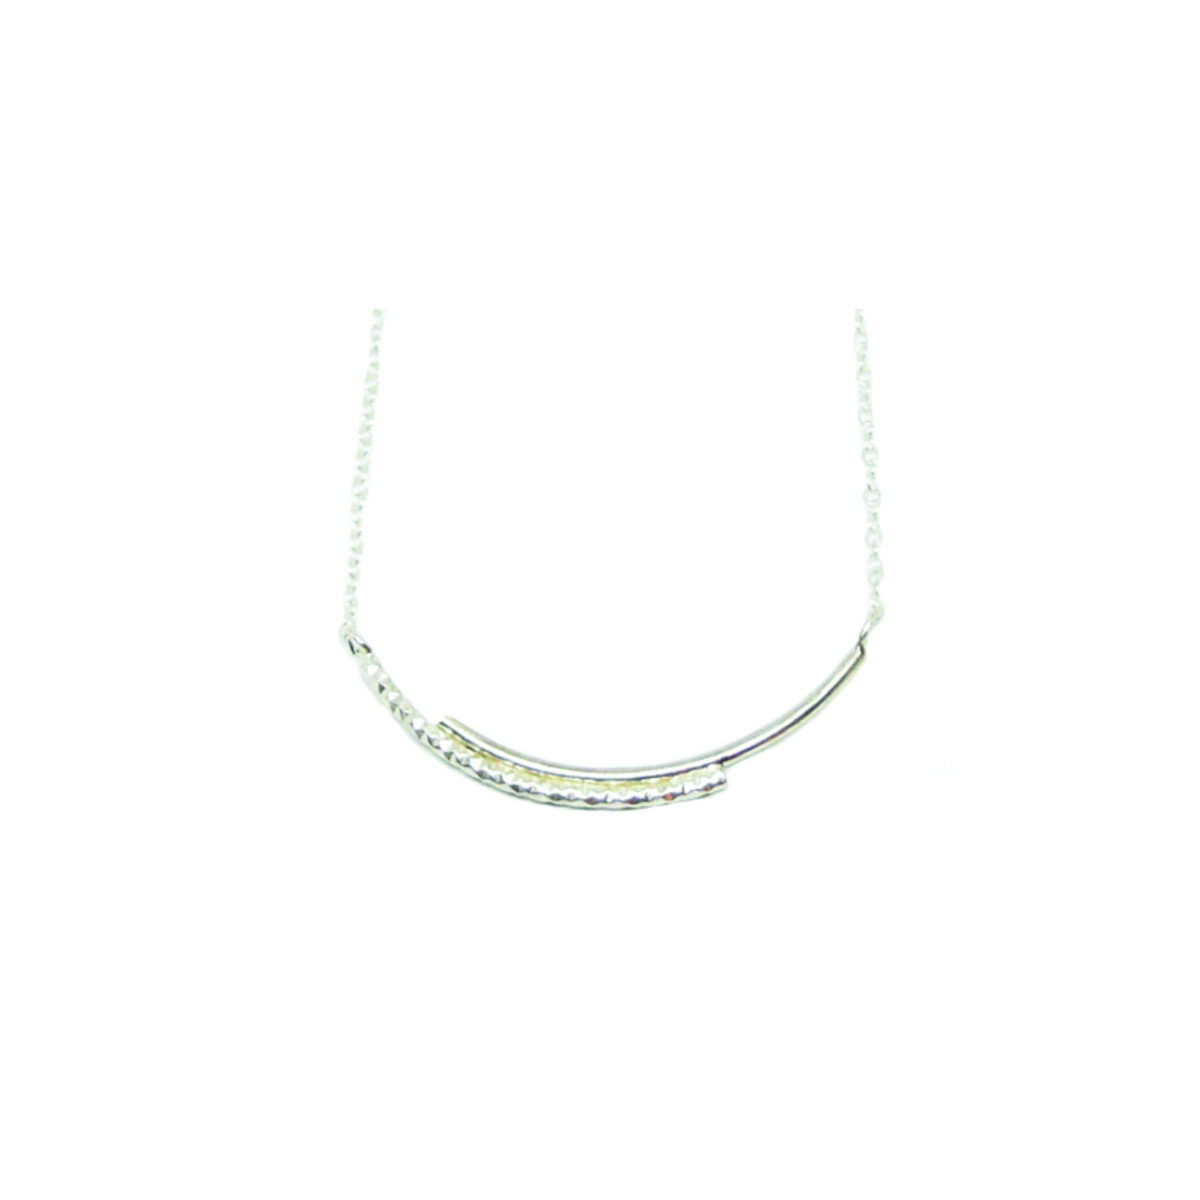 Dance with me II silver necklace